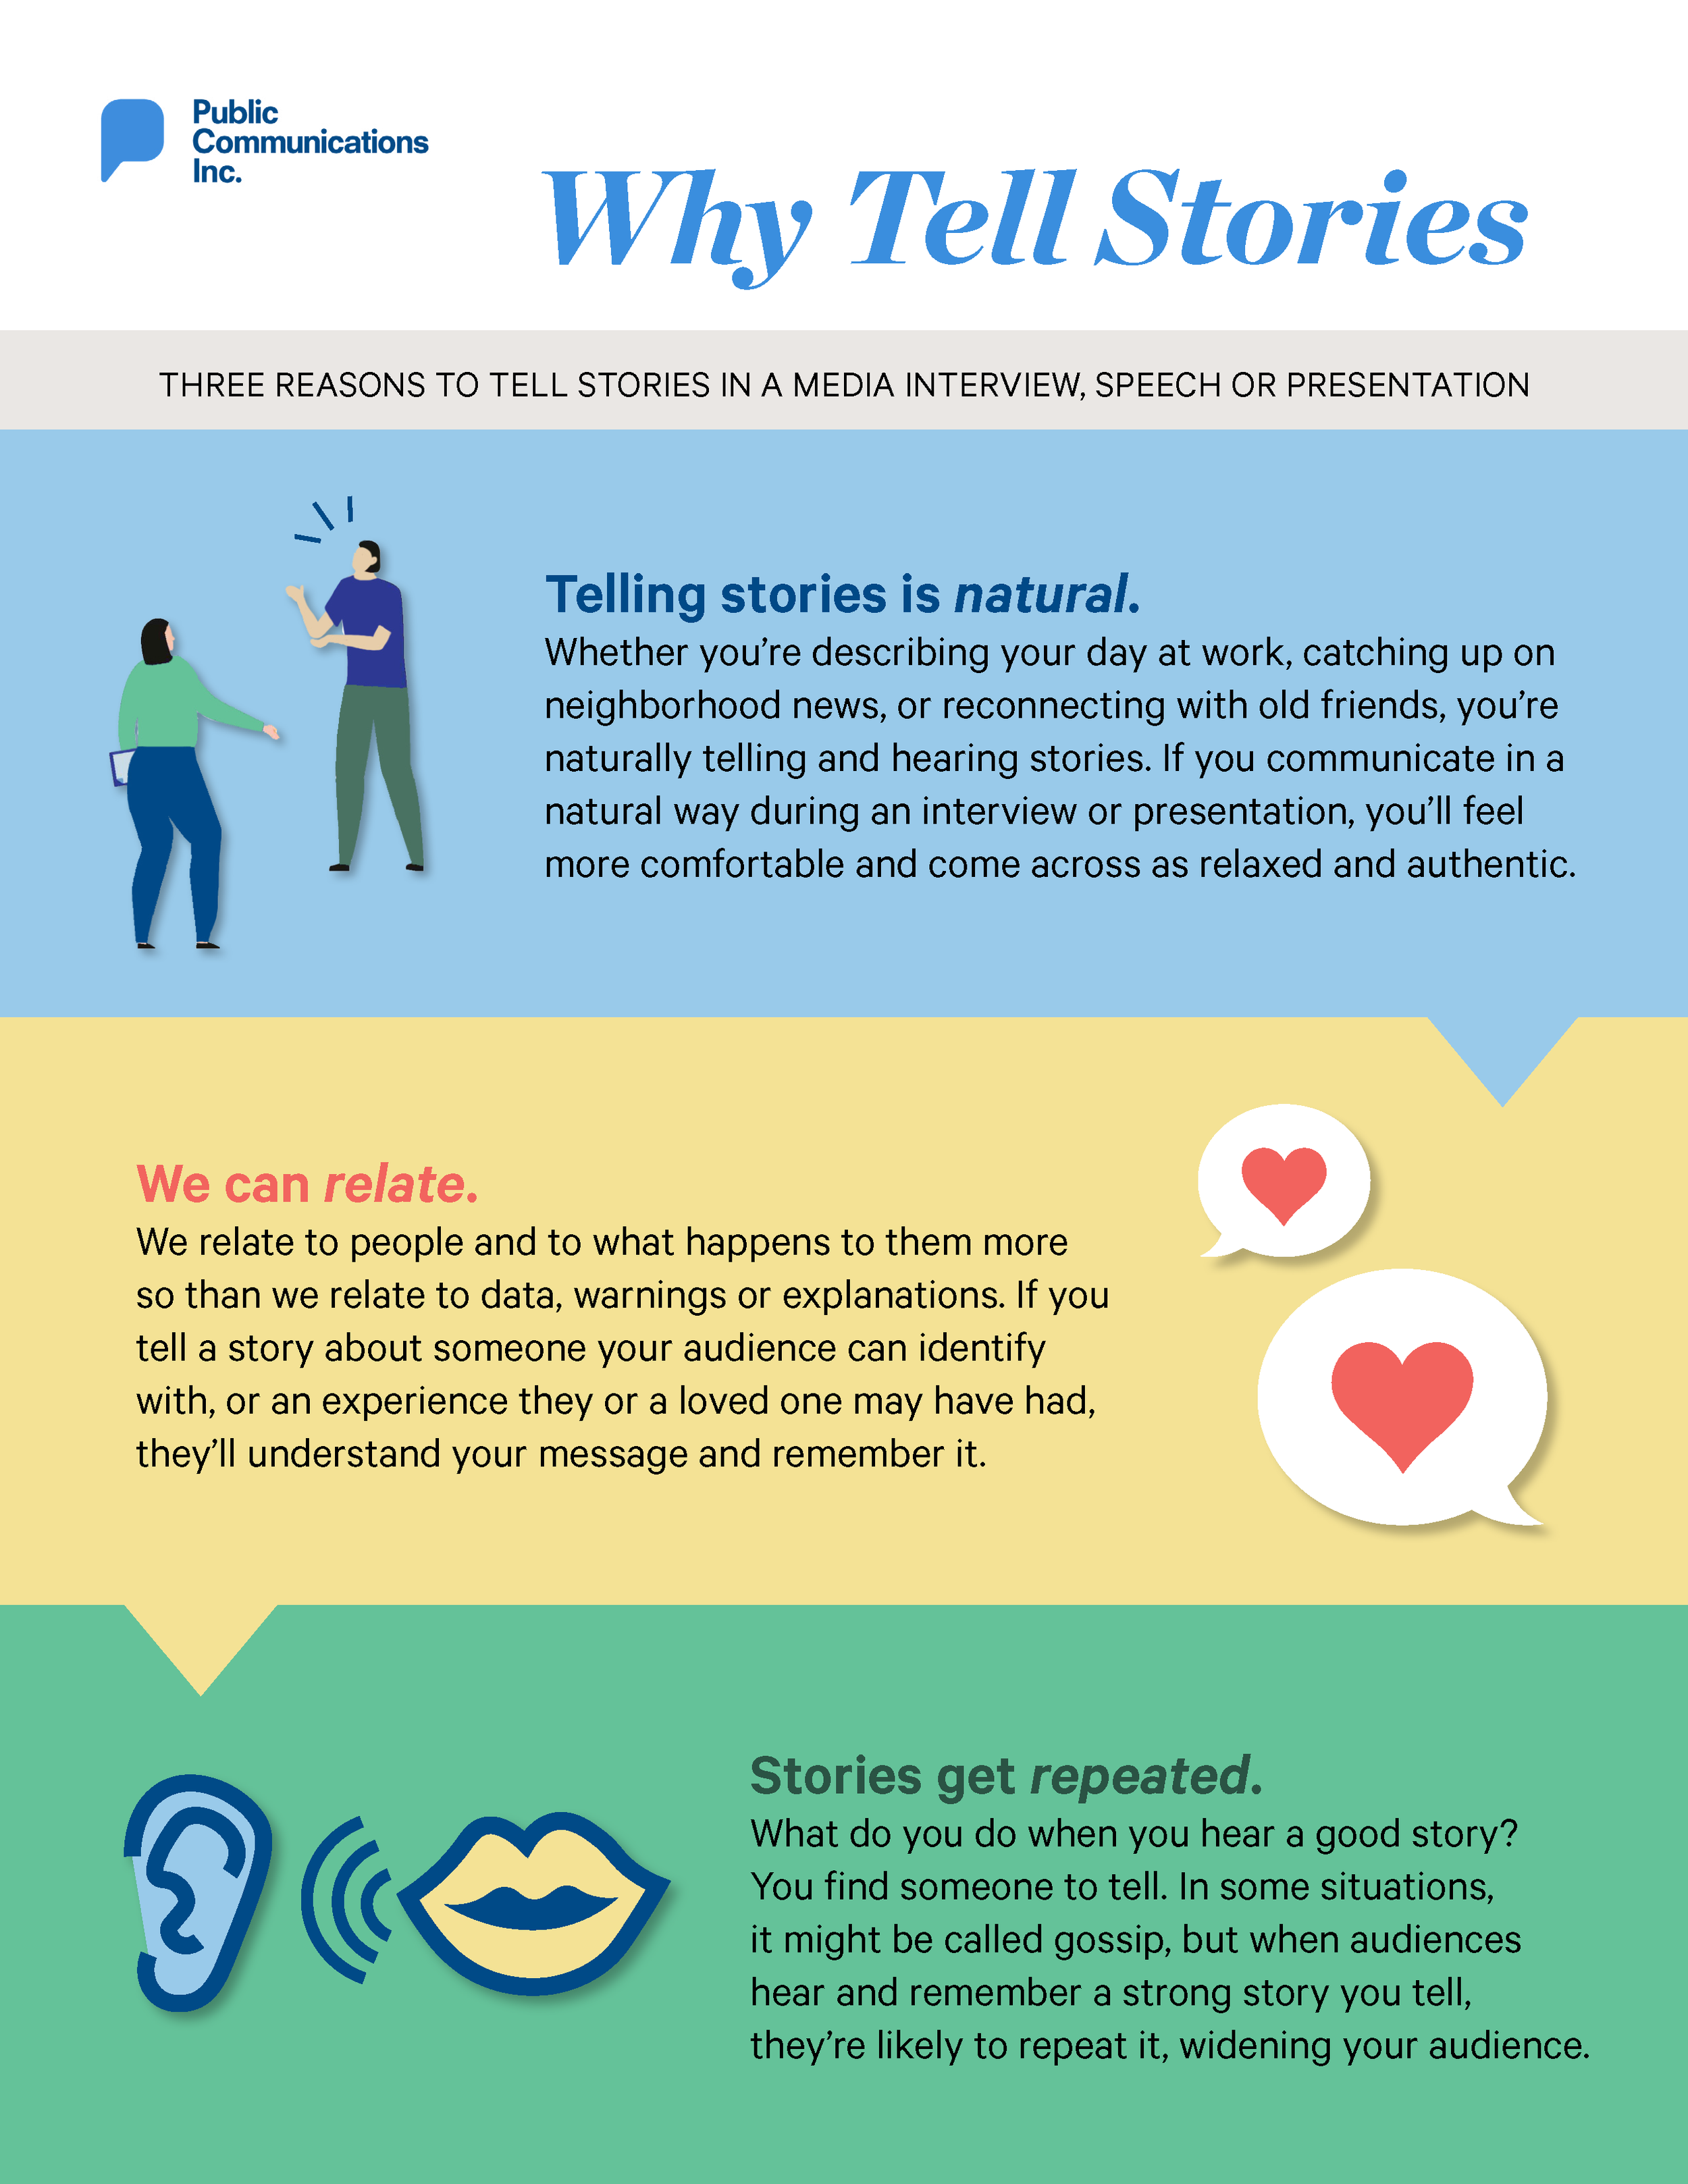 x190702 Why Tell Stories Infographic_FINAL.png